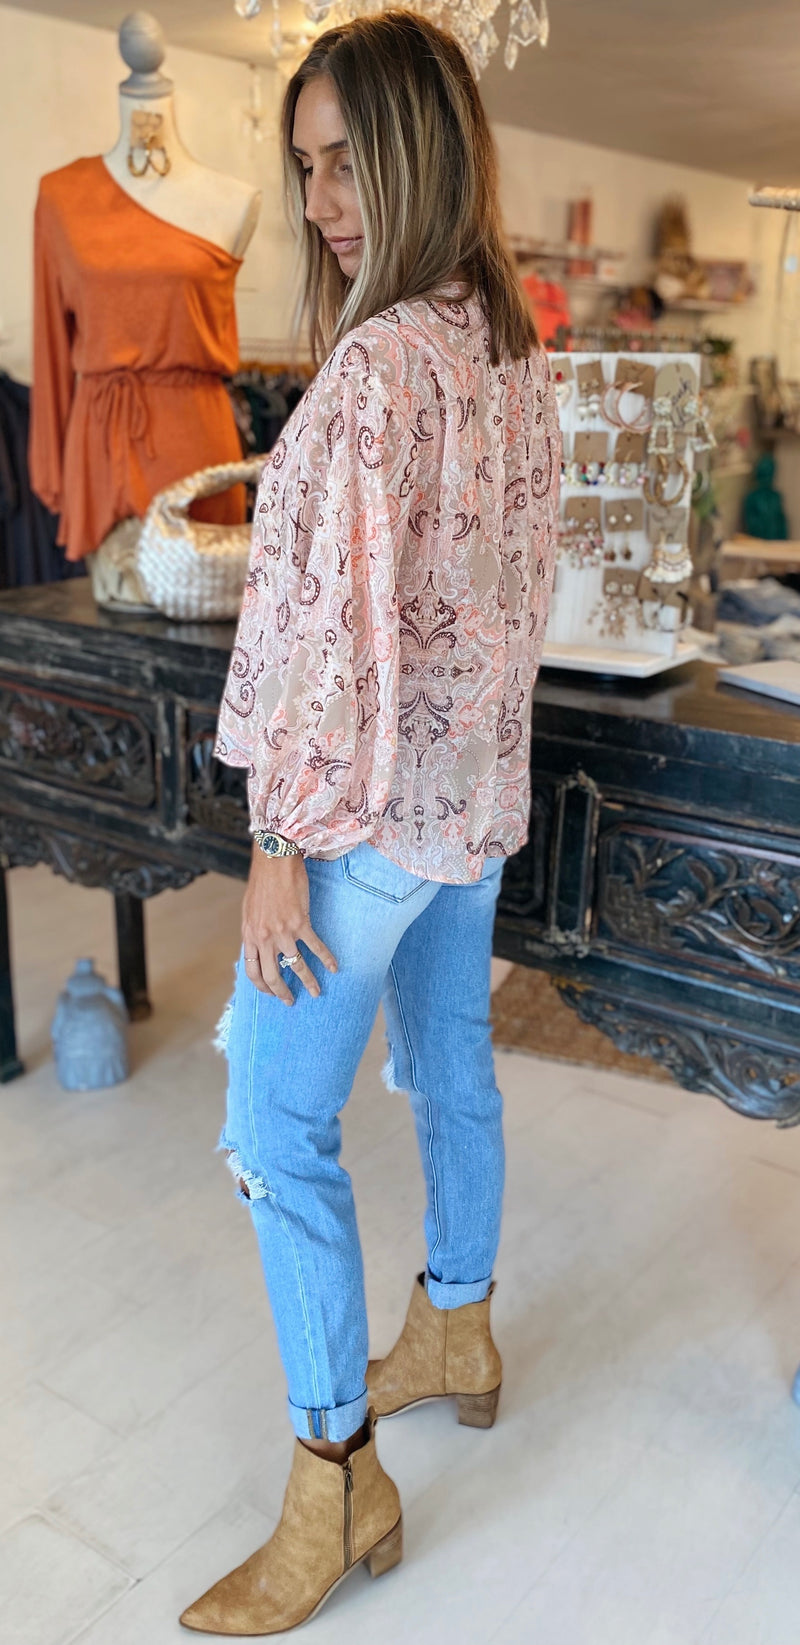 The Sunset Paisley Top